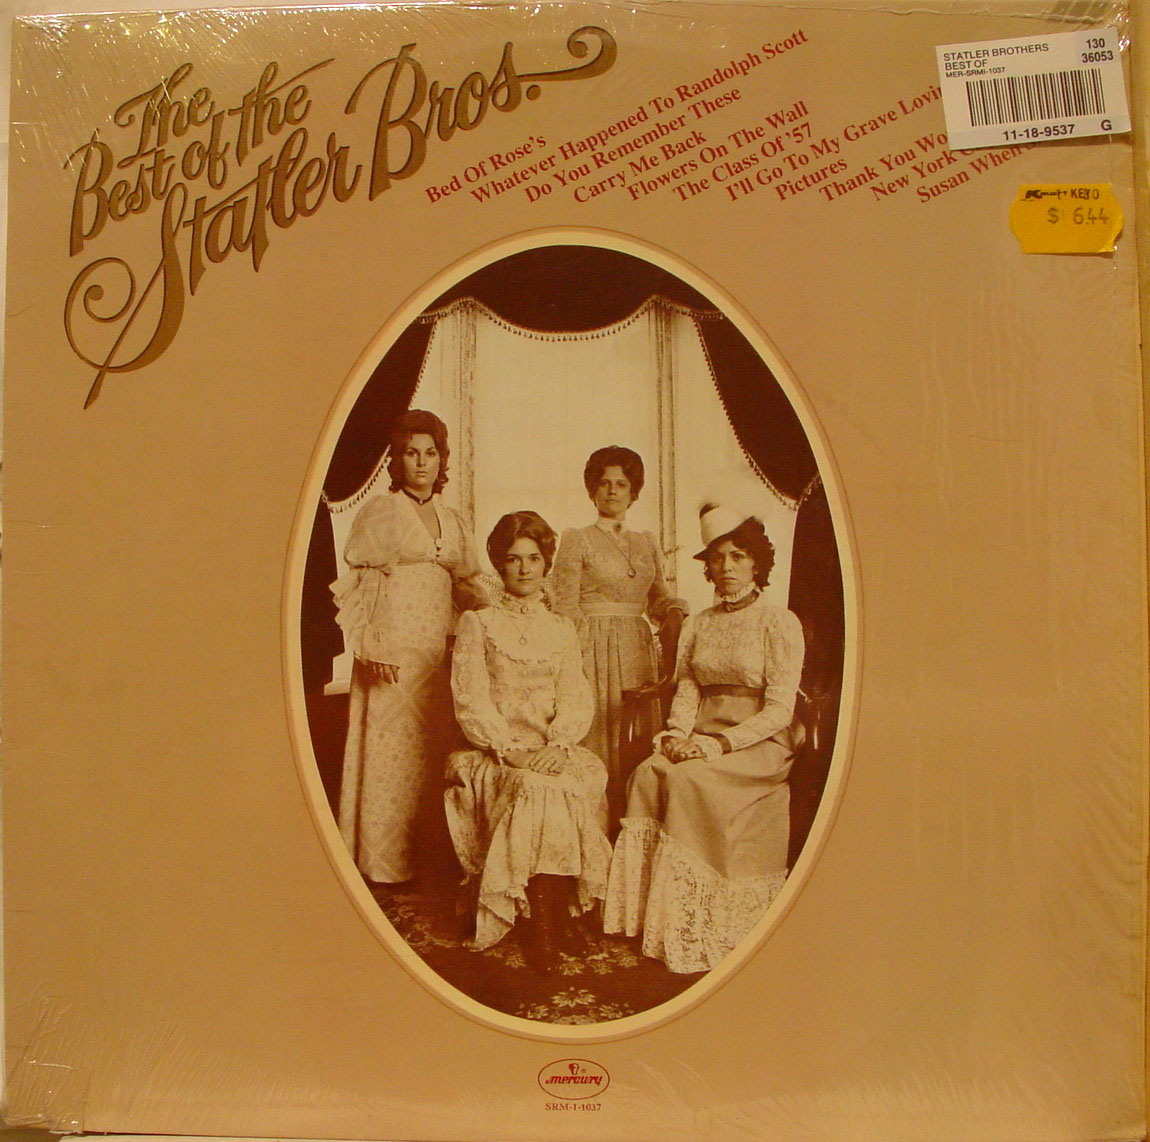 Remember Our Dumb Luck Best The Statler Brothers LP